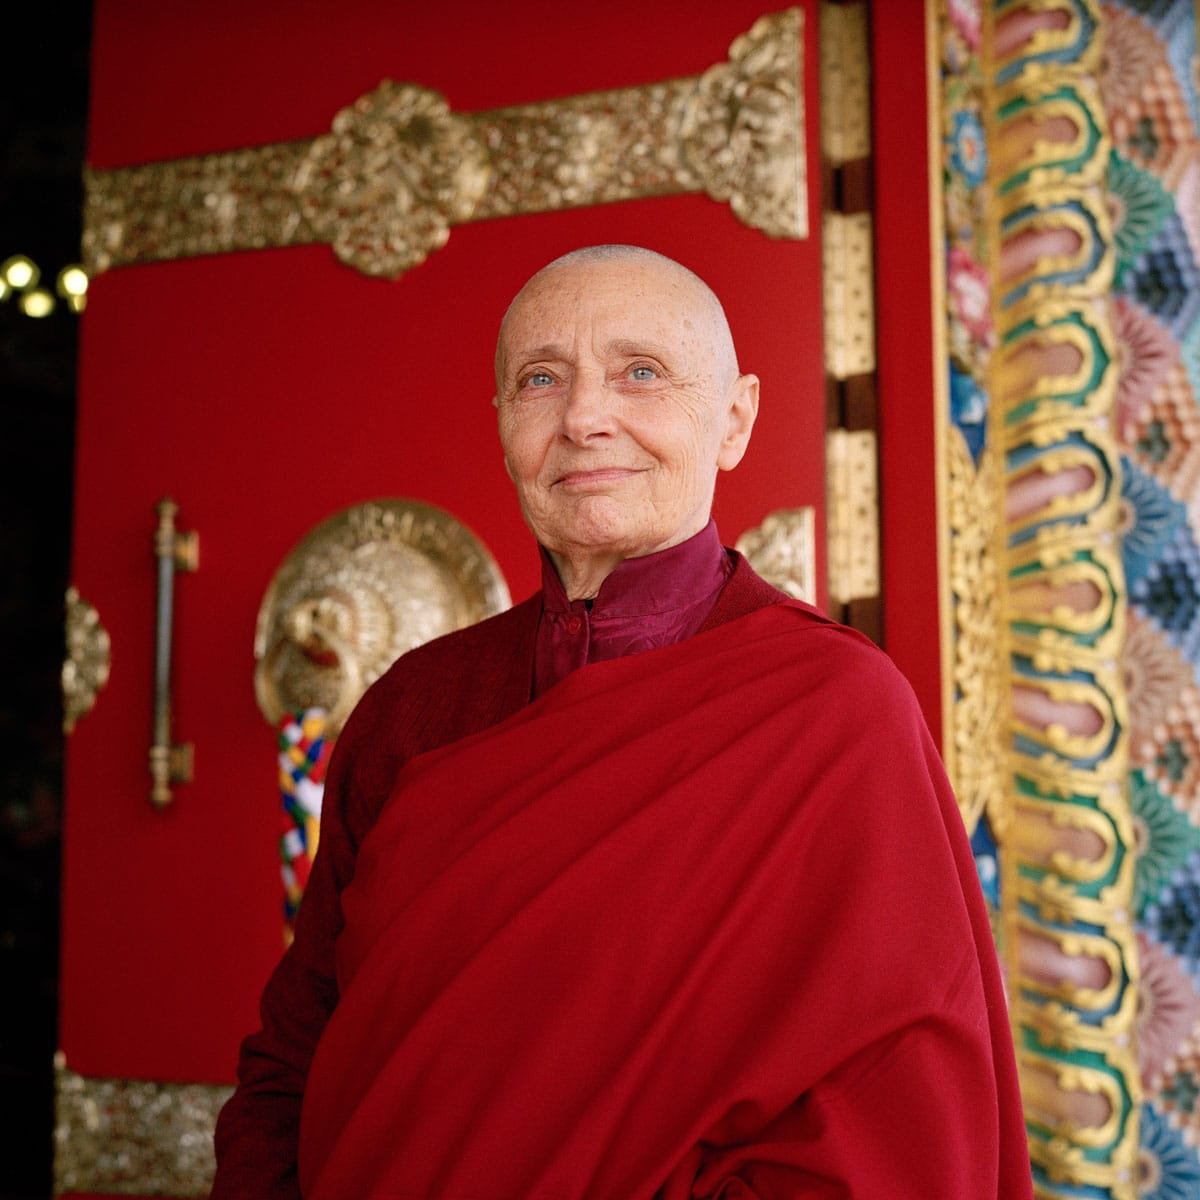 Religion orientale et culture occidentale Tenzin-palmo-2